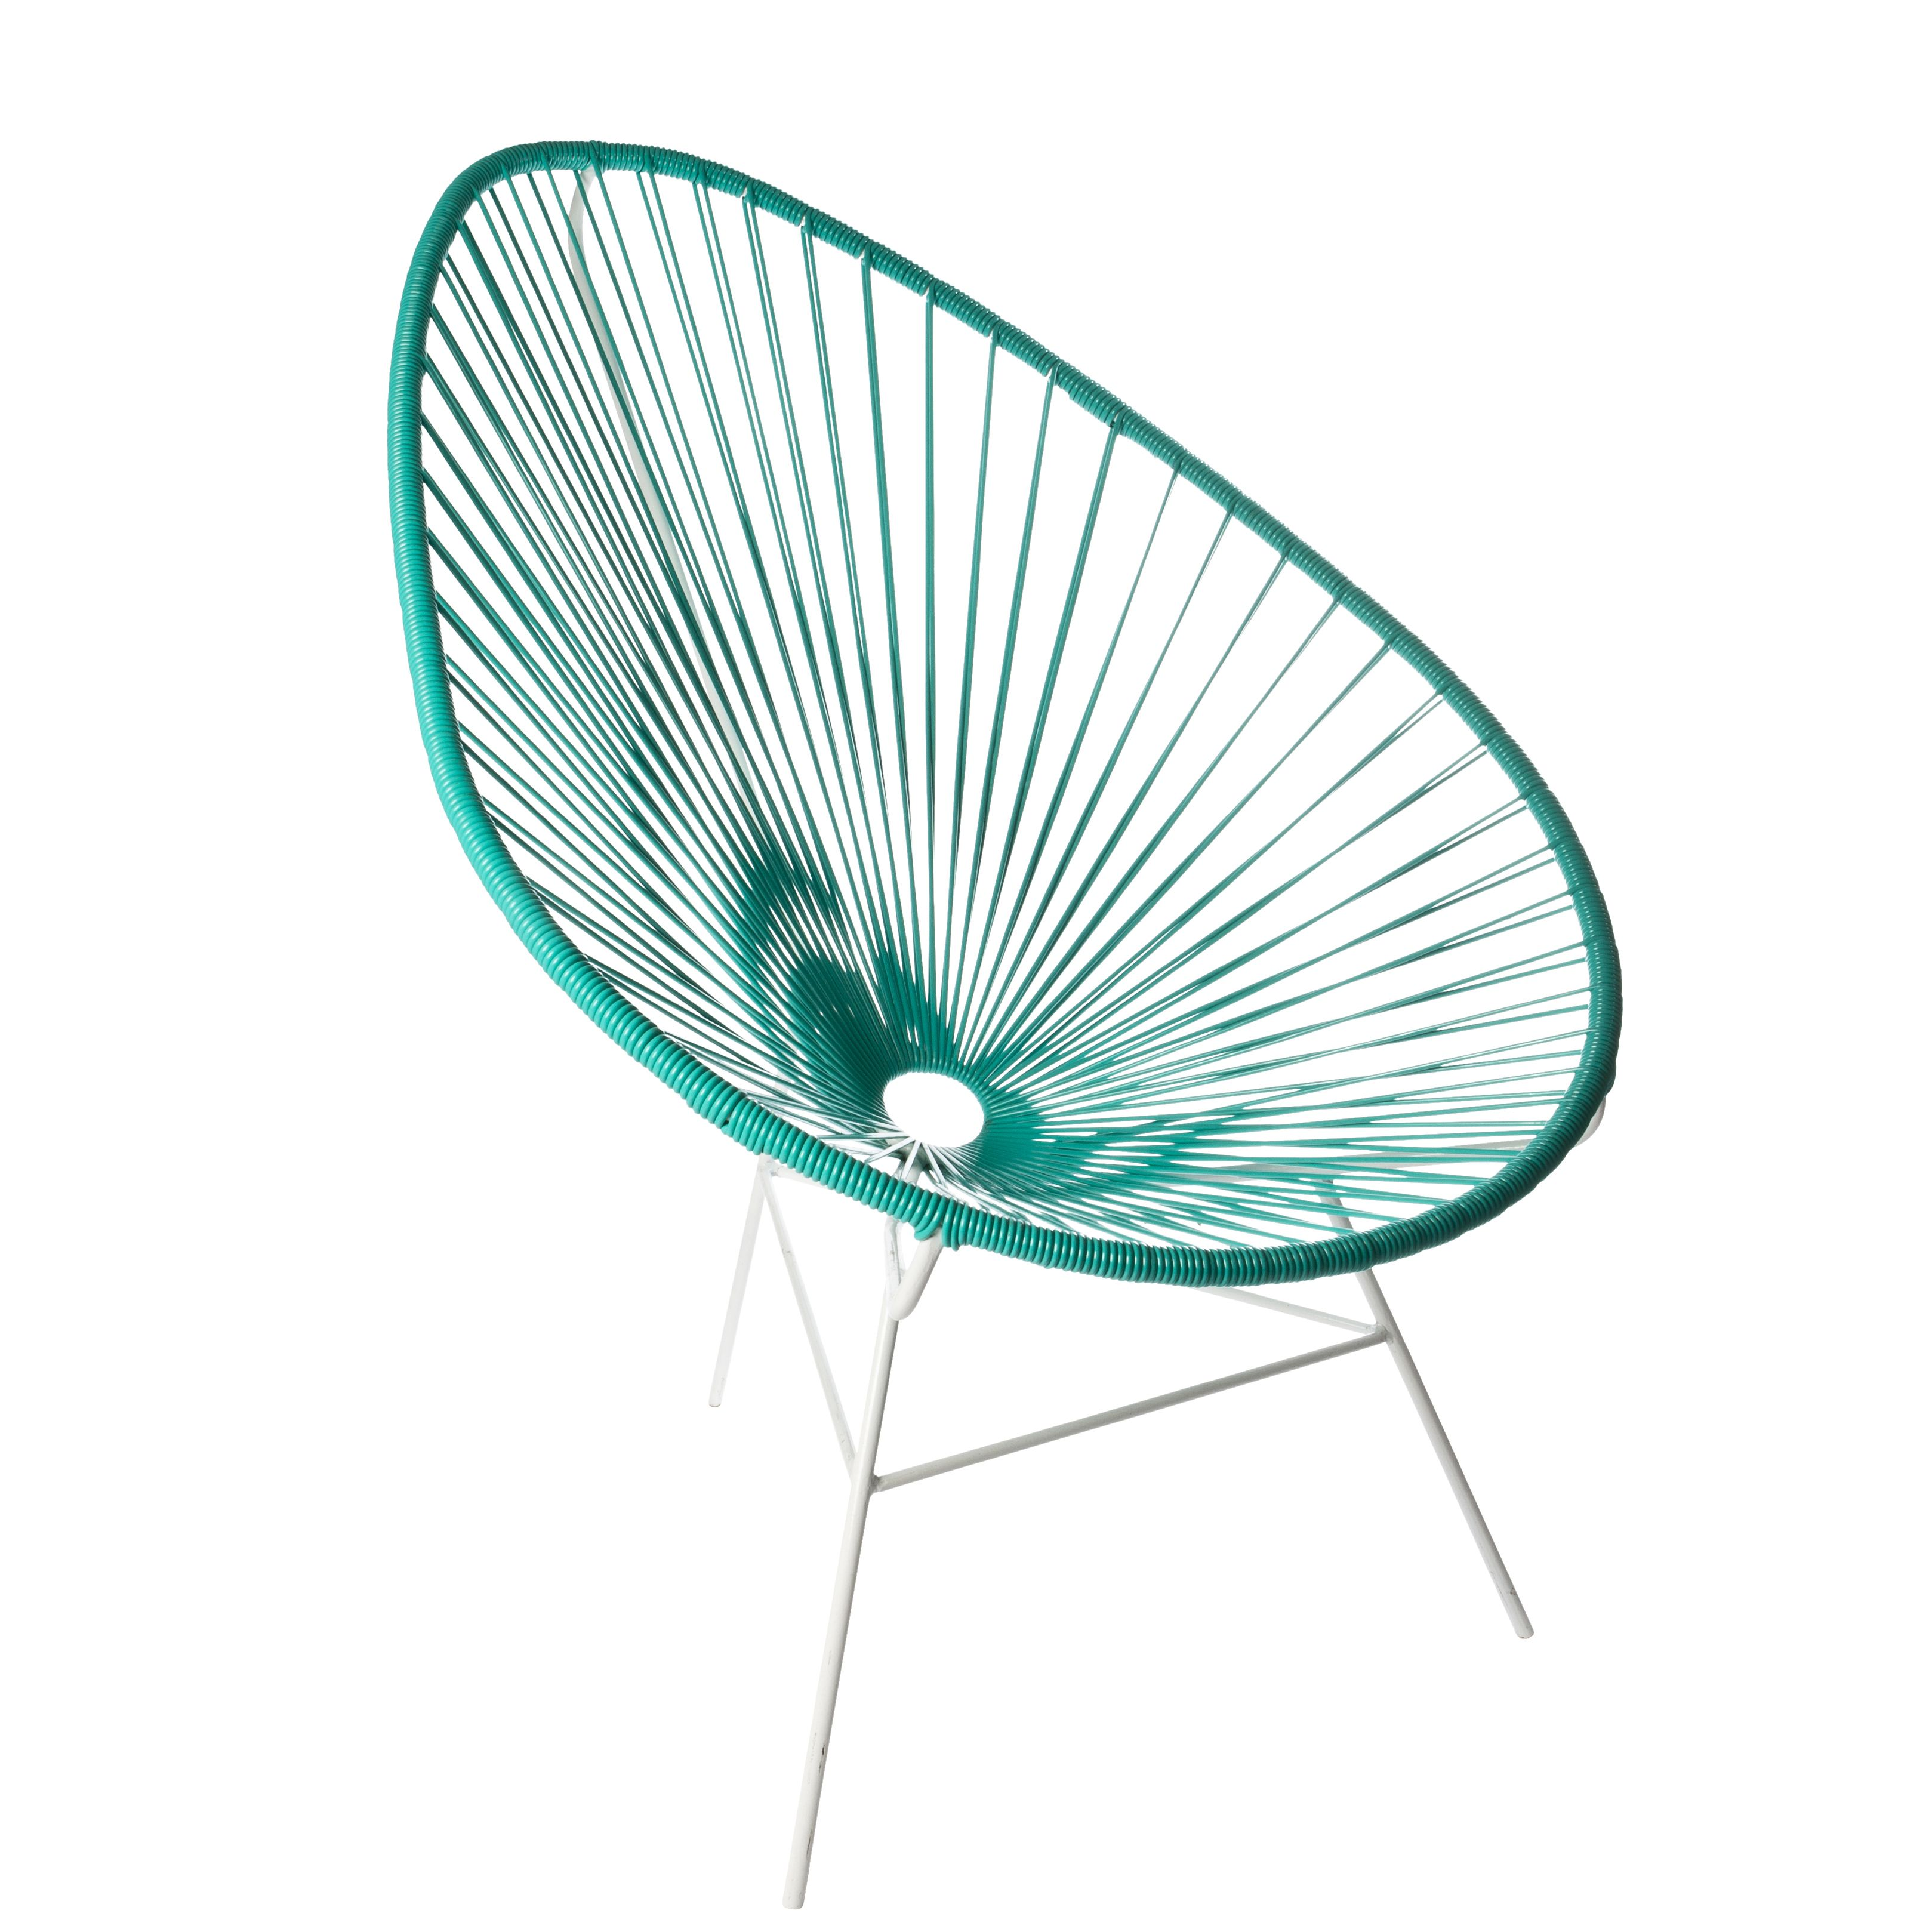 Acapulco chair vintage - Green Acapulco Chair